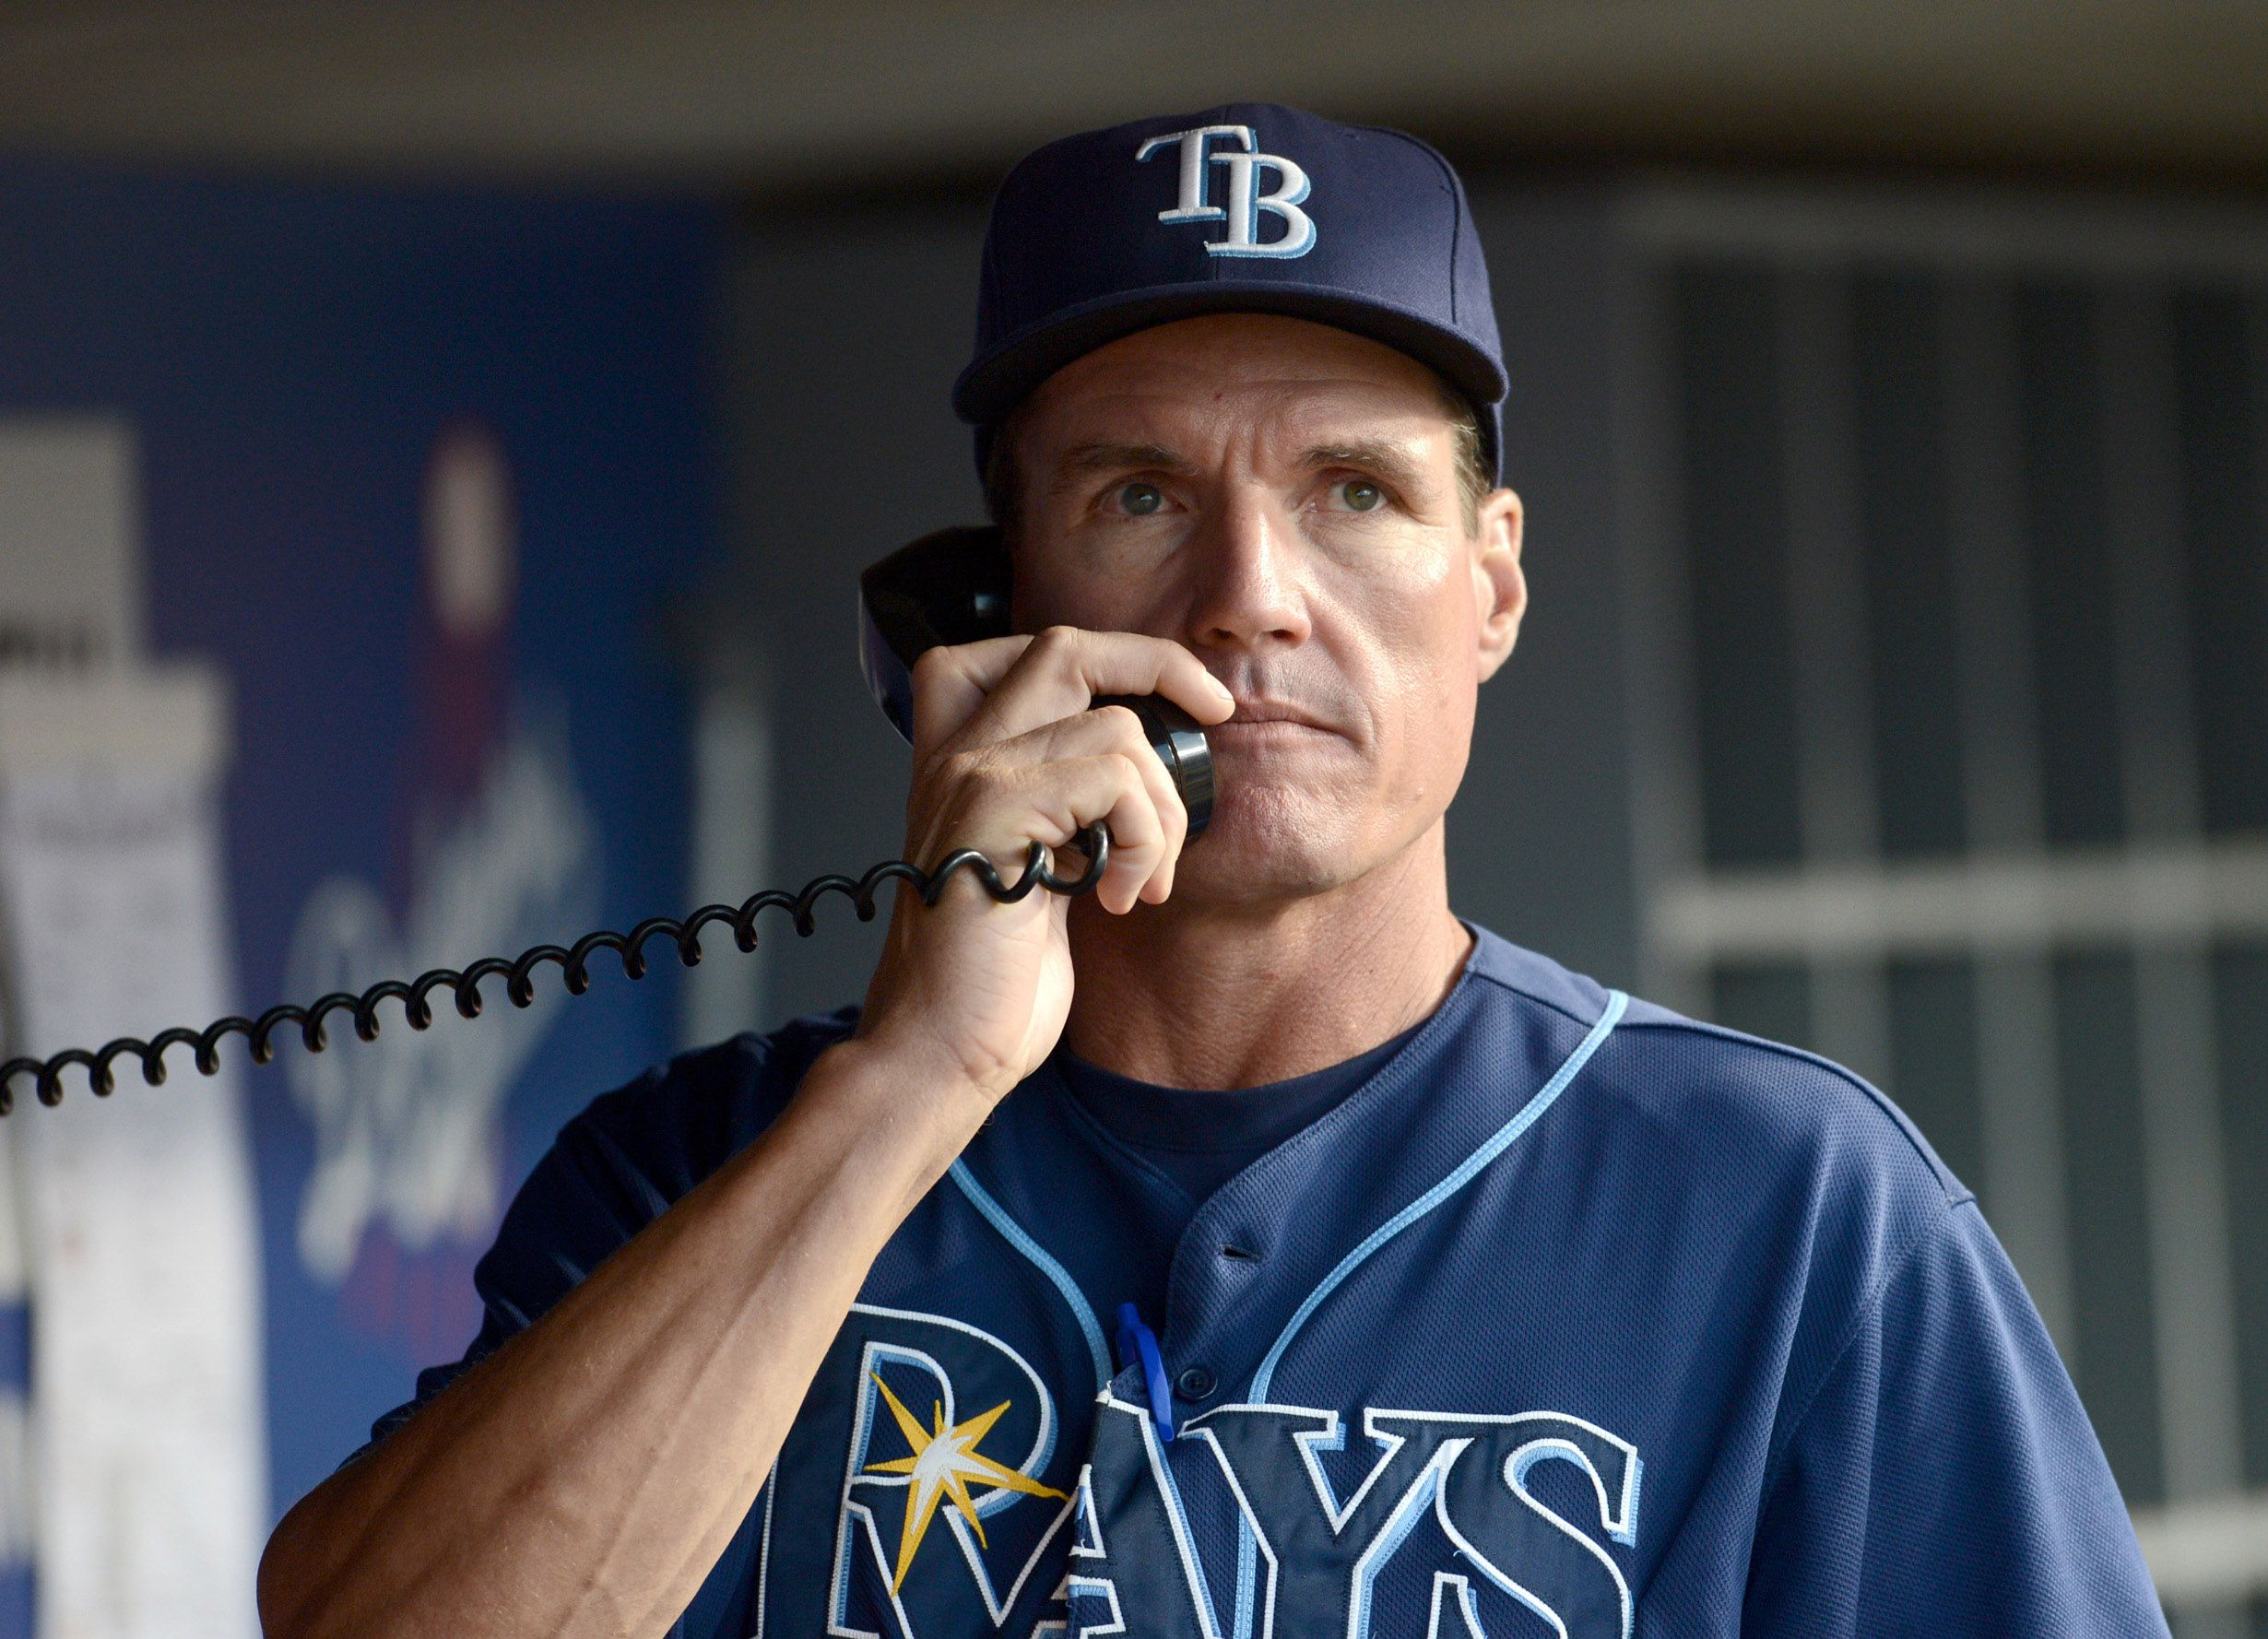 Tampa Bay Rays Pitching Coach Jim Hickey Makes A Call To The Bullpen During The Game Against The Los Angeles Dodgers At Tampa Bay Rays Tampa Bay Dodger Stadium